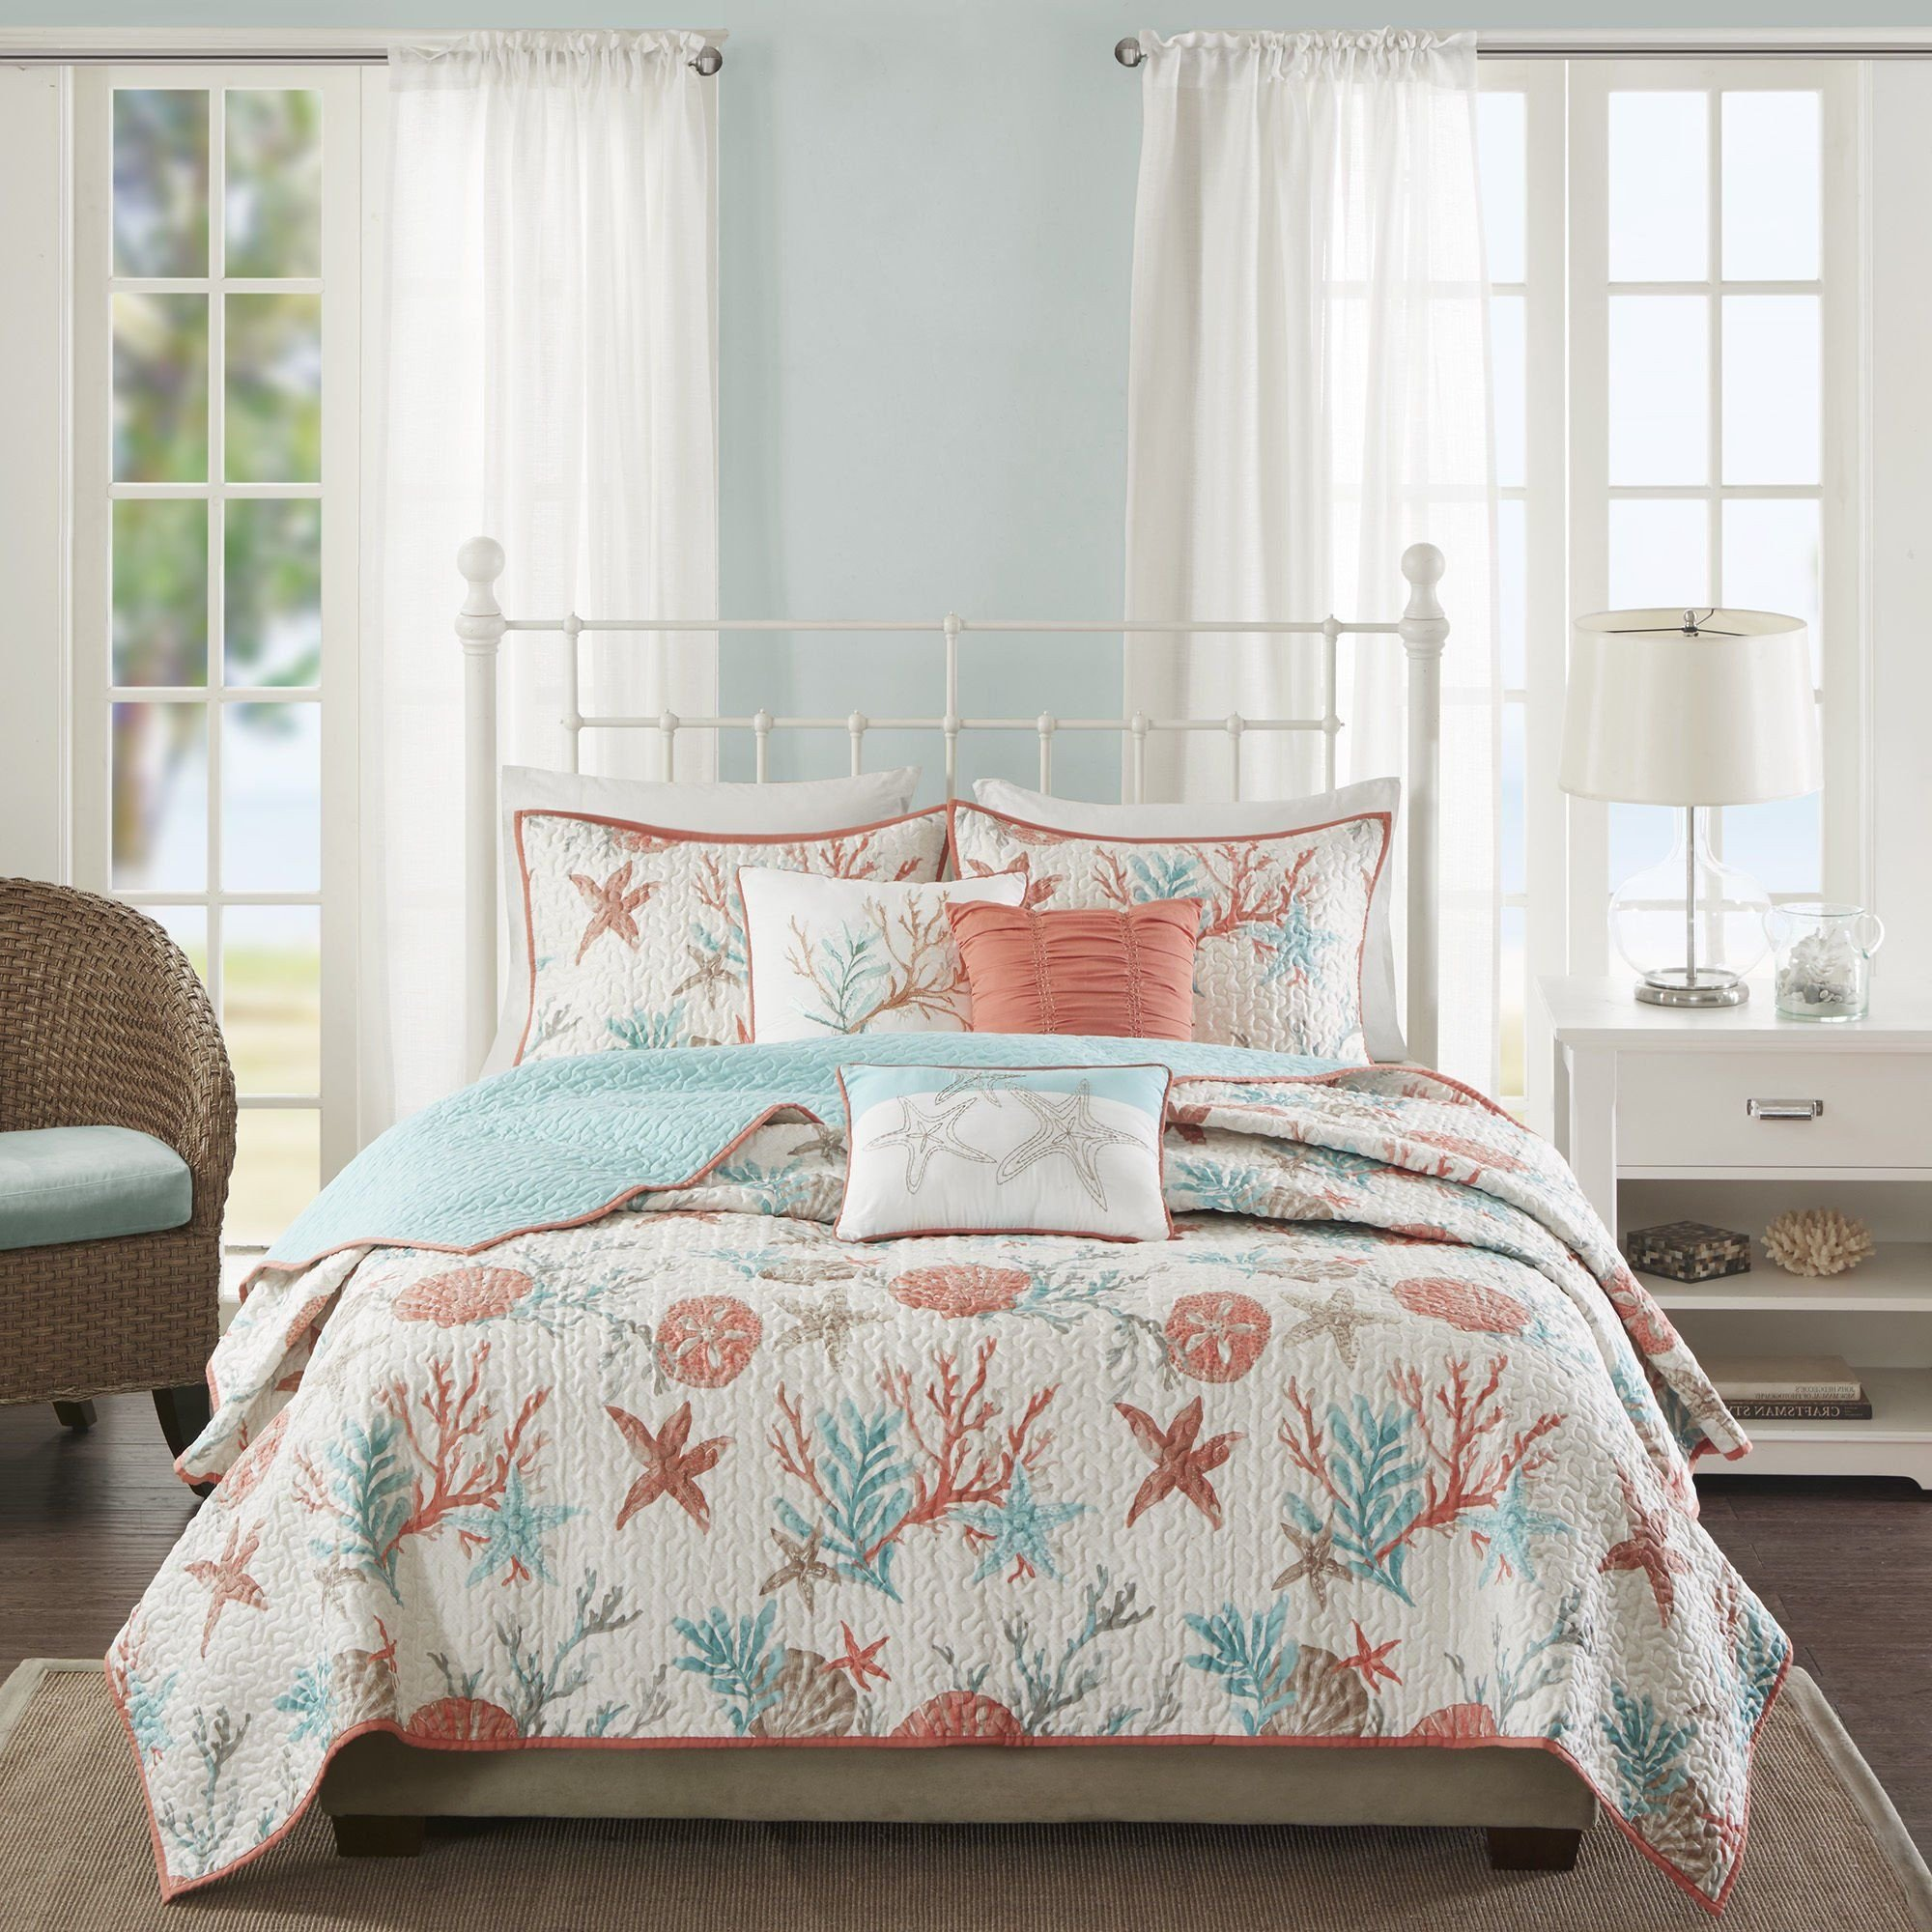 Beach themed Bedroom Furniture Luxury 6 Piece Vibrant orange Pink Blue White Full Queen Quilt Set